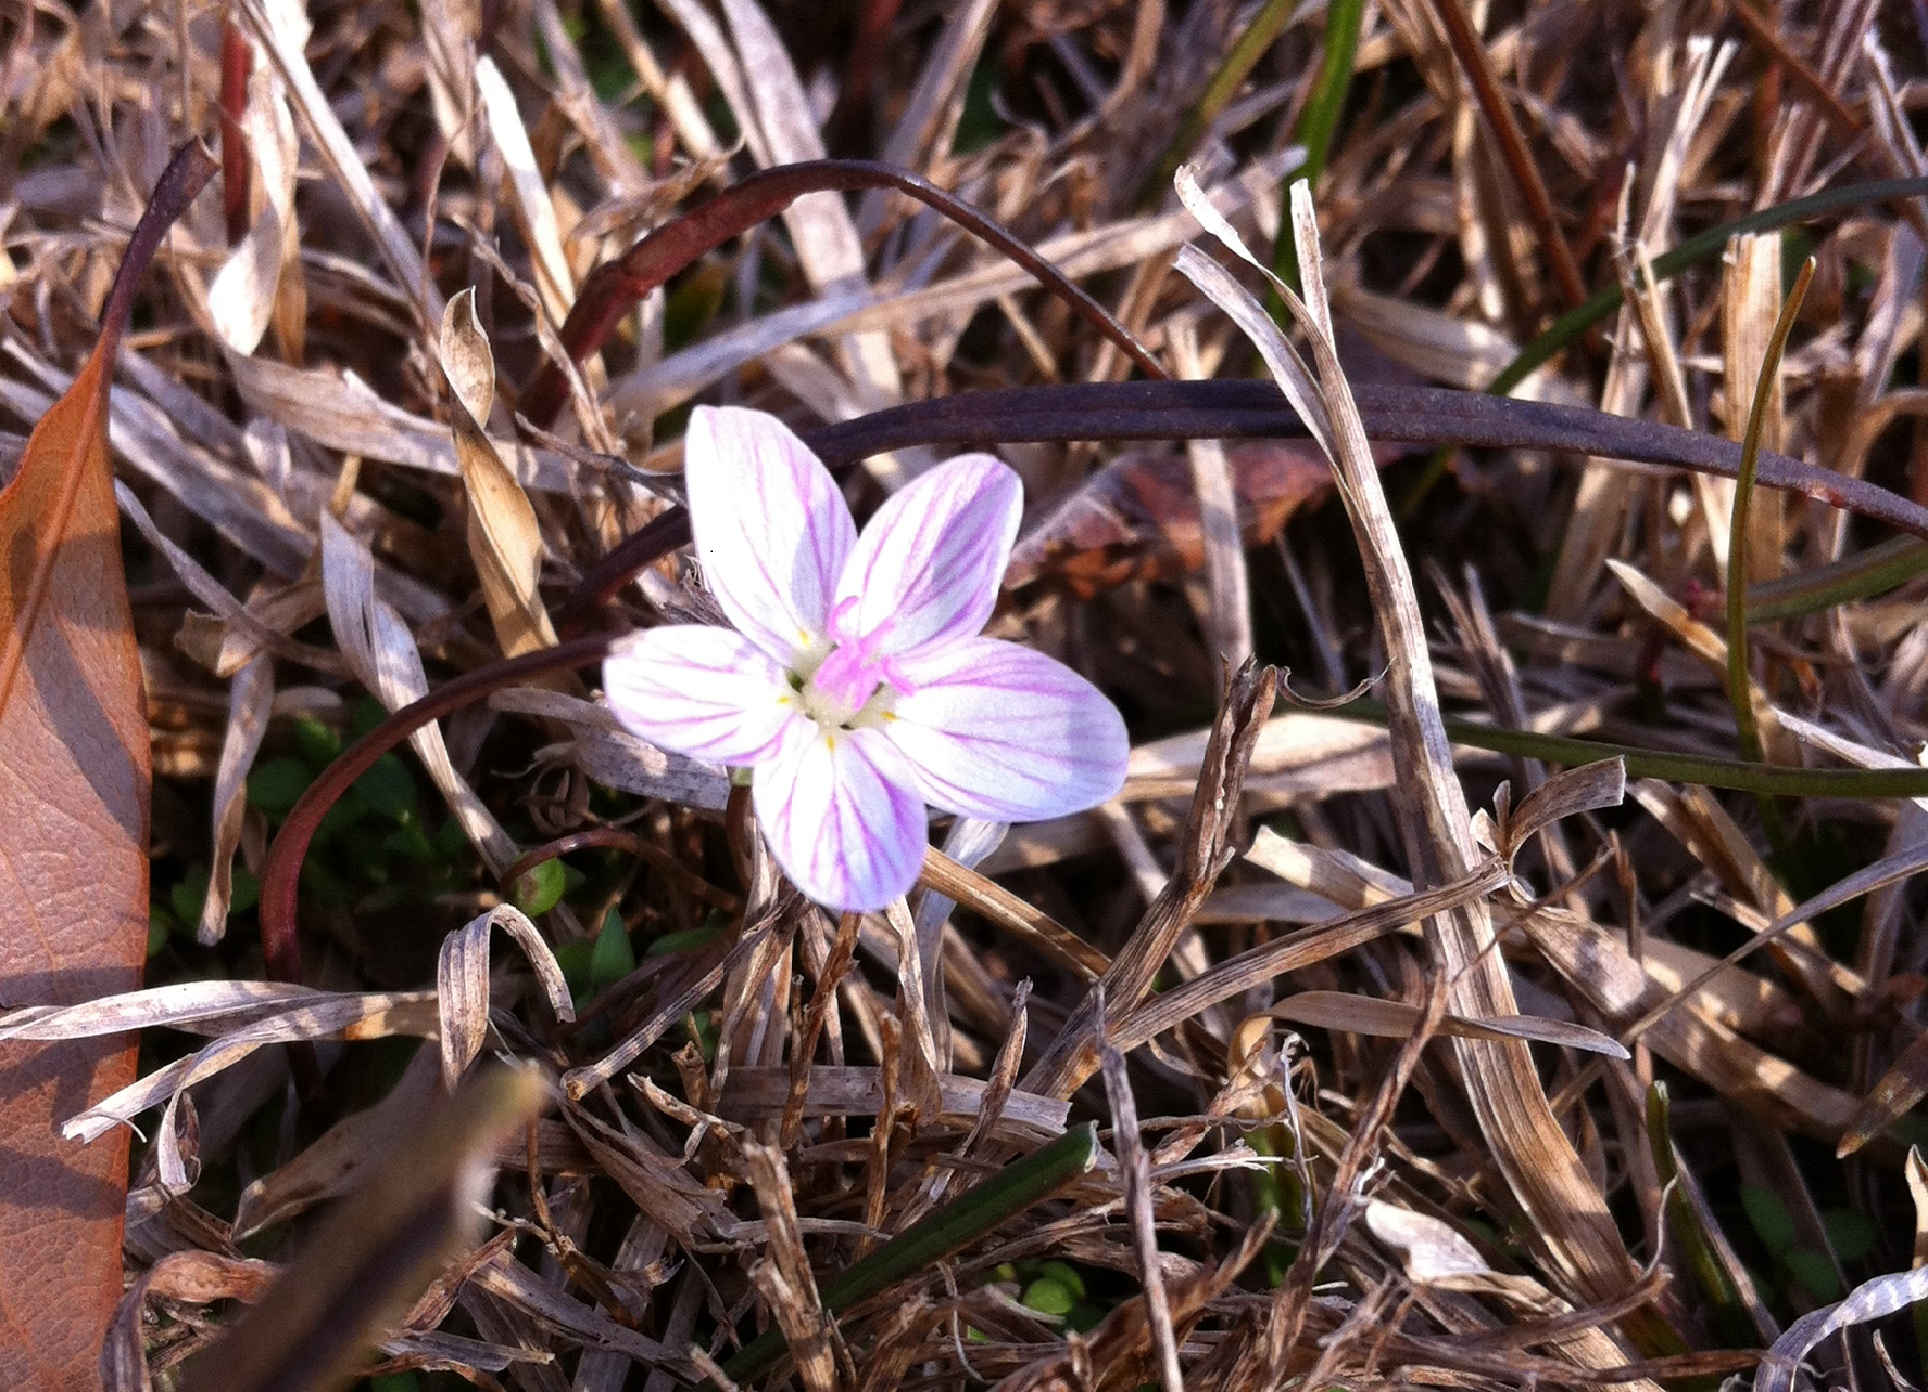 up close view of small white and pink flower contrasted against brown, dormant grass]